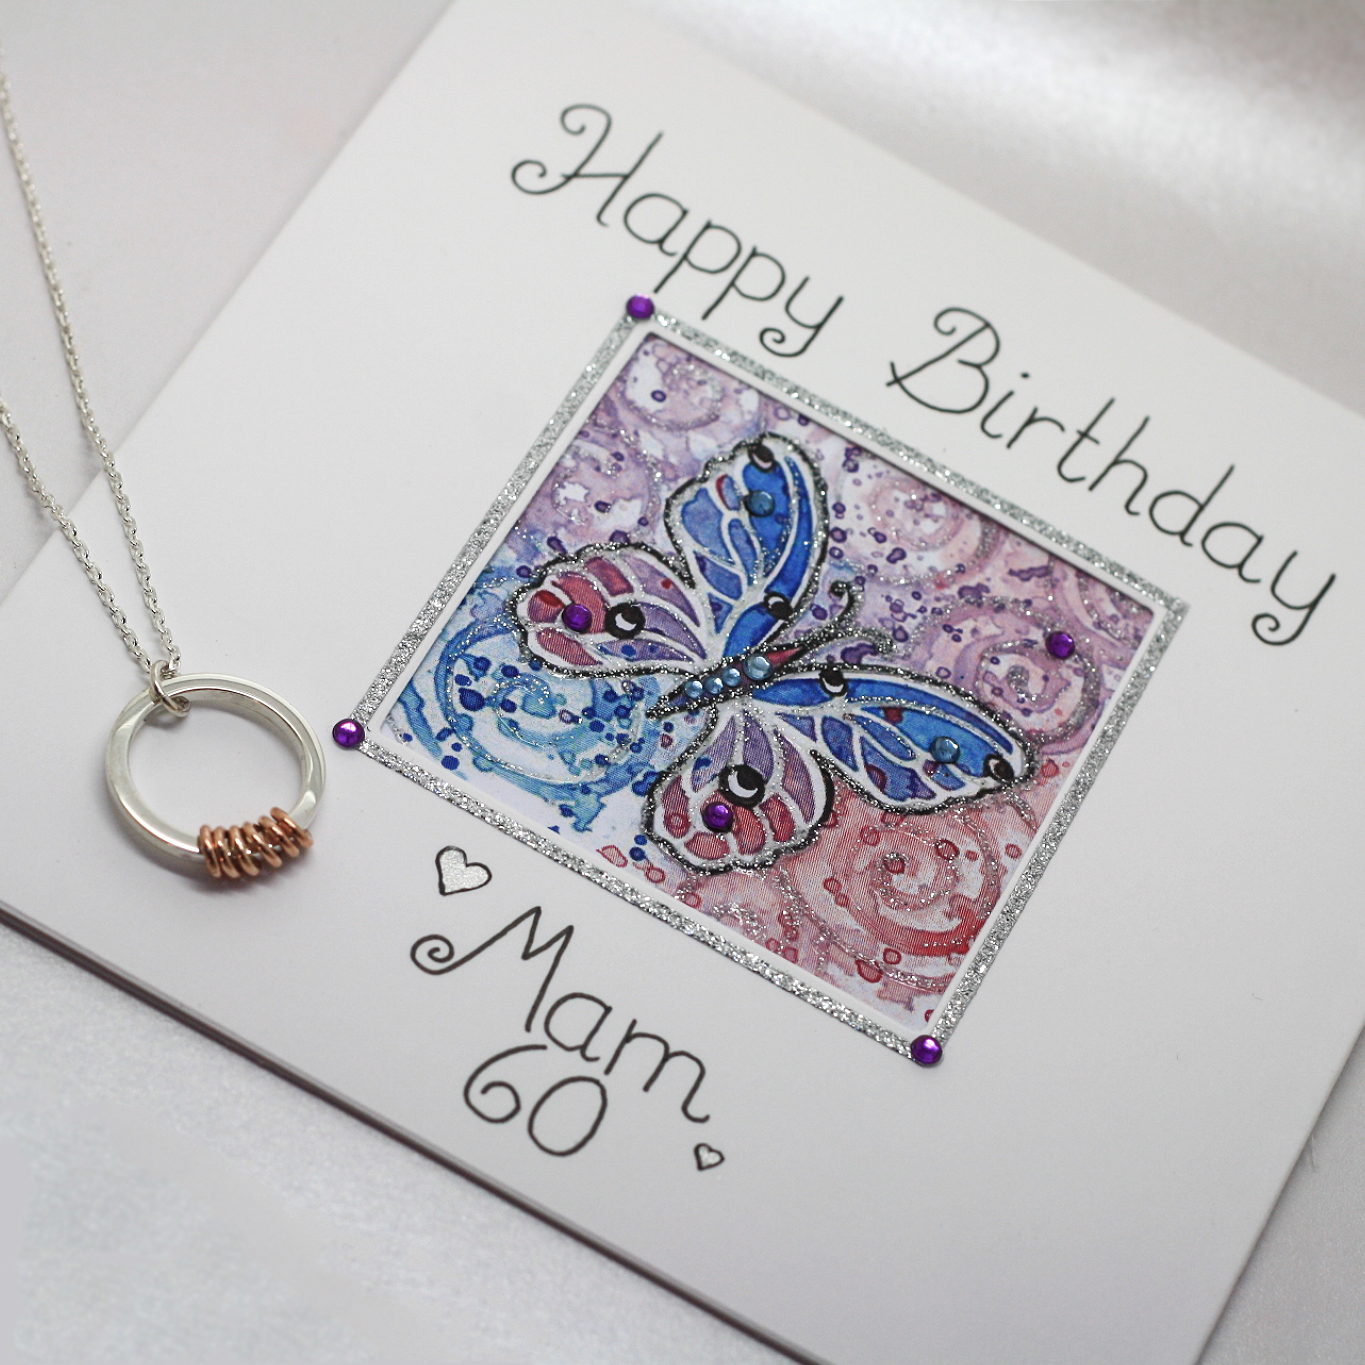 Handmade Sterling Silver & 9ct Rose Gold 60th Birthday Necklace by LuLu & charles Jewellery with Handmade Bespoke 60th Birthday Card by Flutter by Lorraine, County Durham England